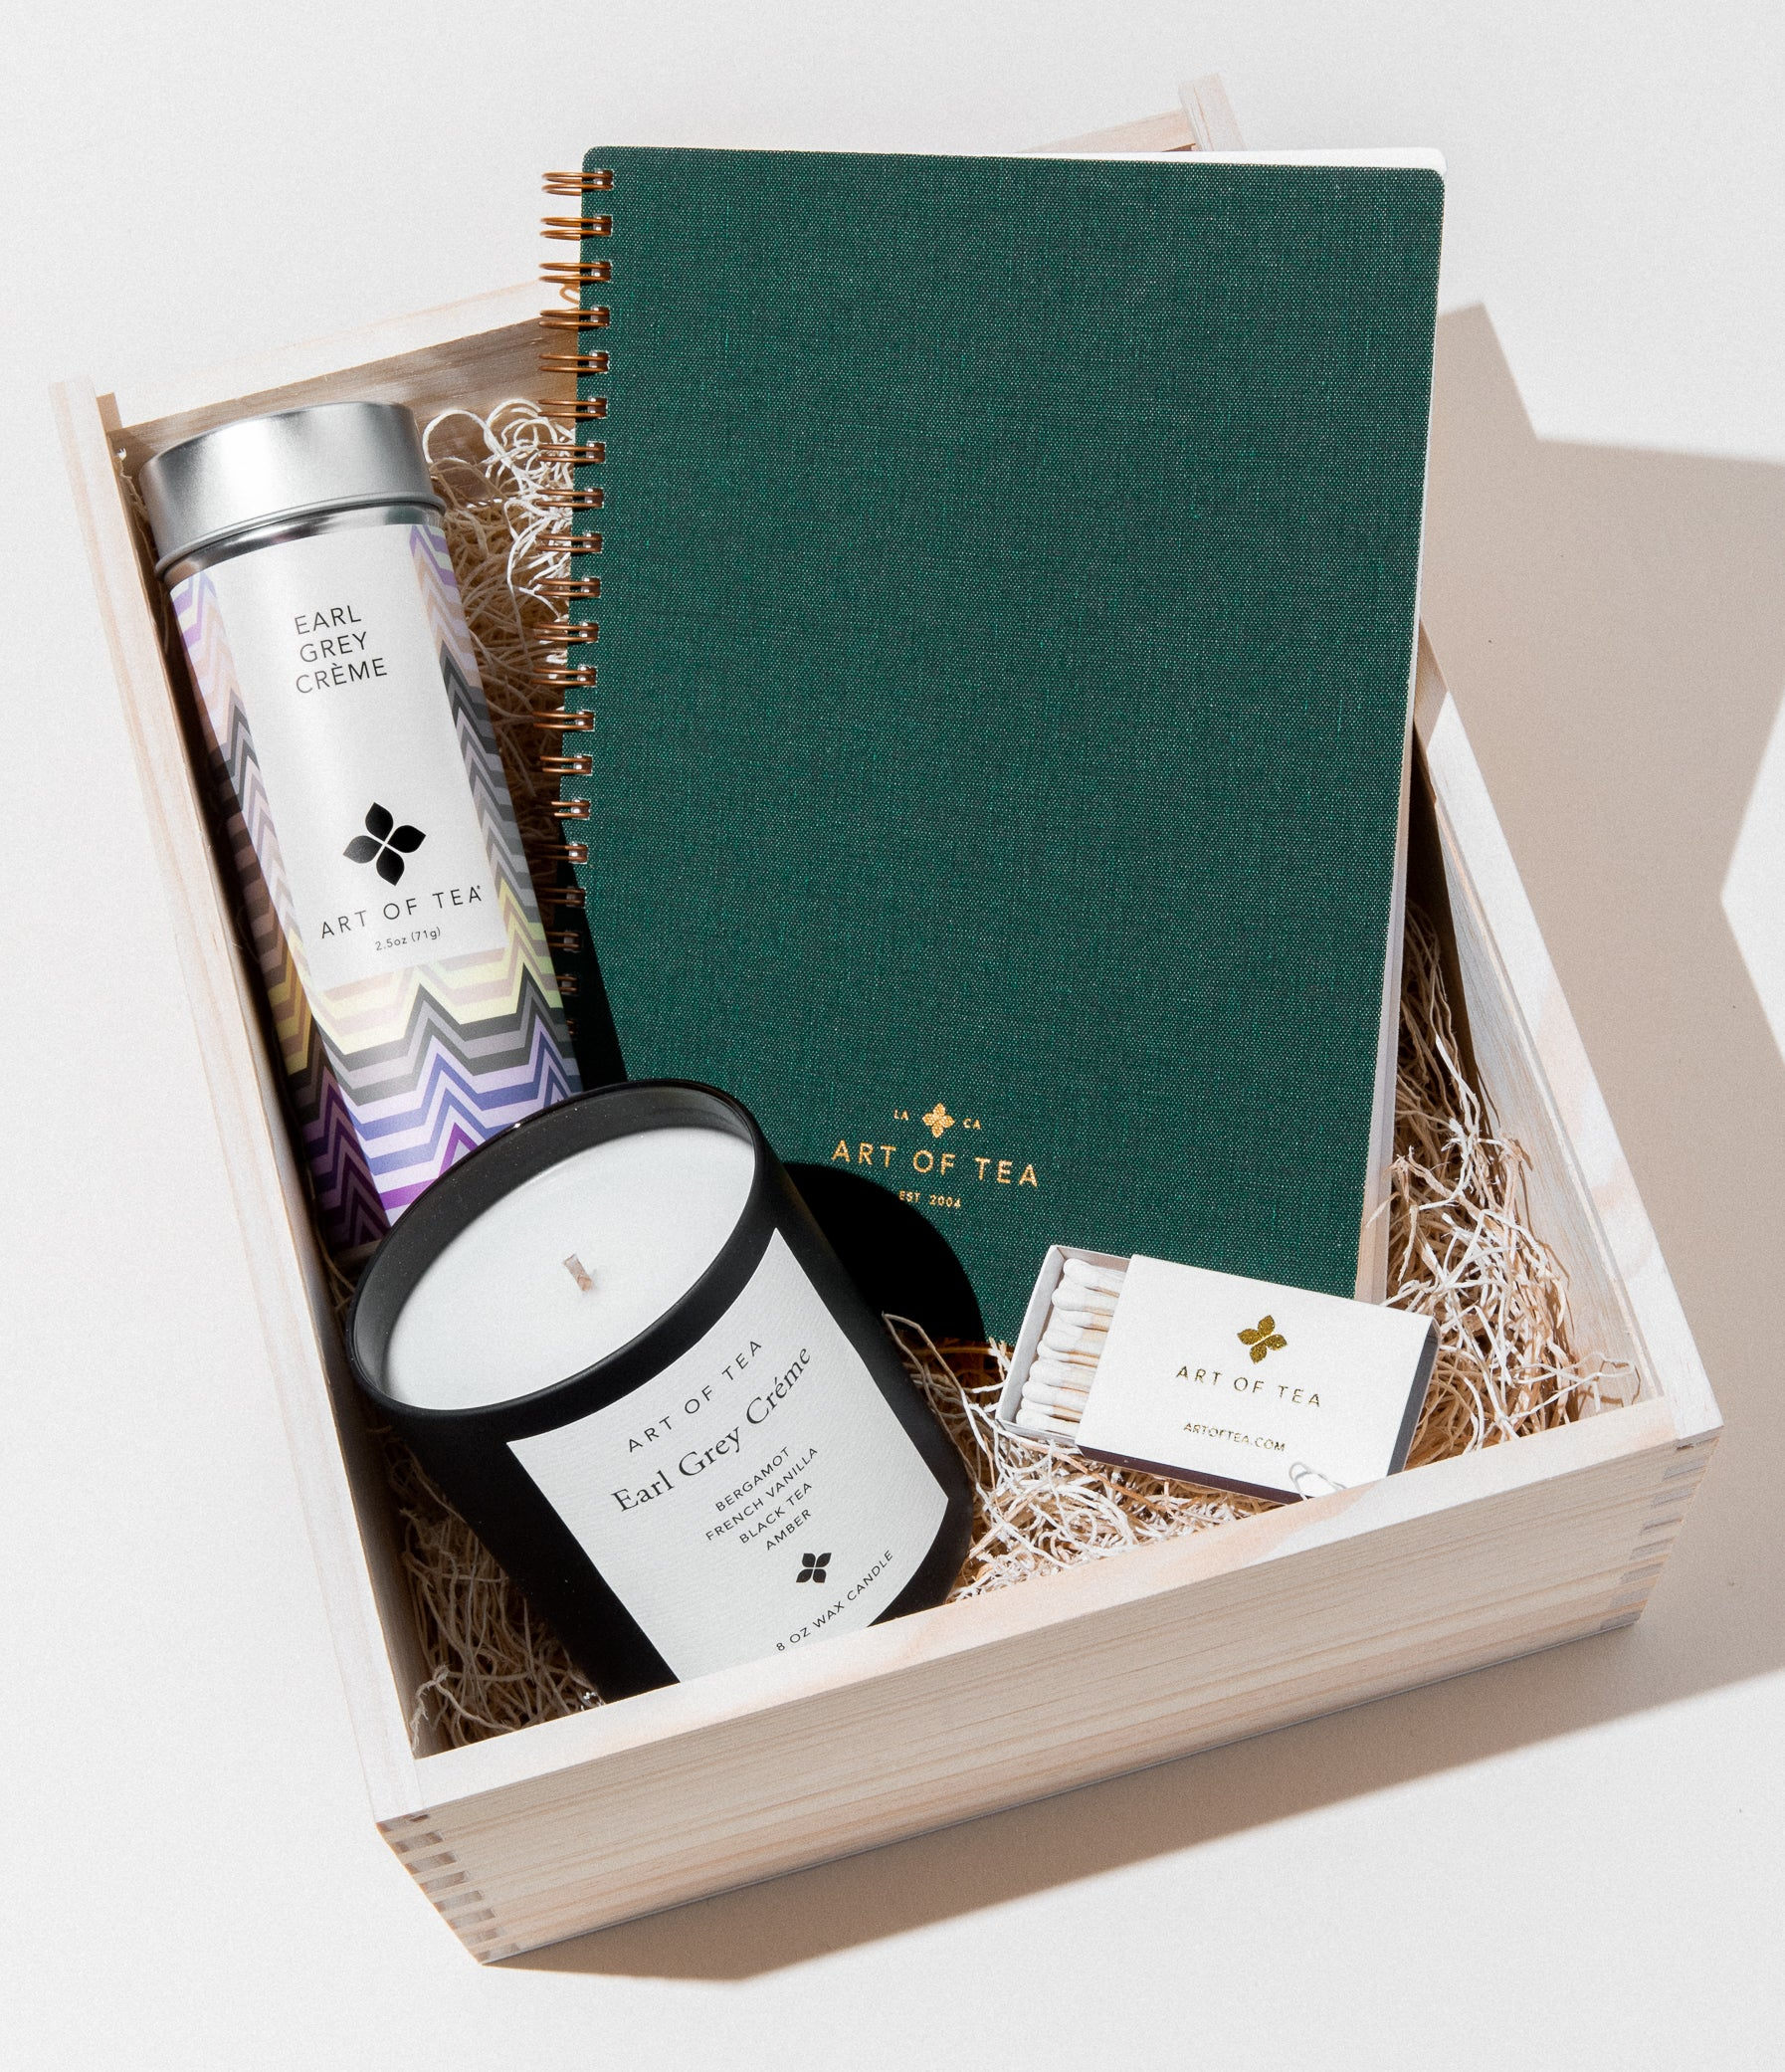 Candle, Matches, Journal, & Earl Grey Creme Retail Tin Gift Box Set Tea Gifts by Art of Tea